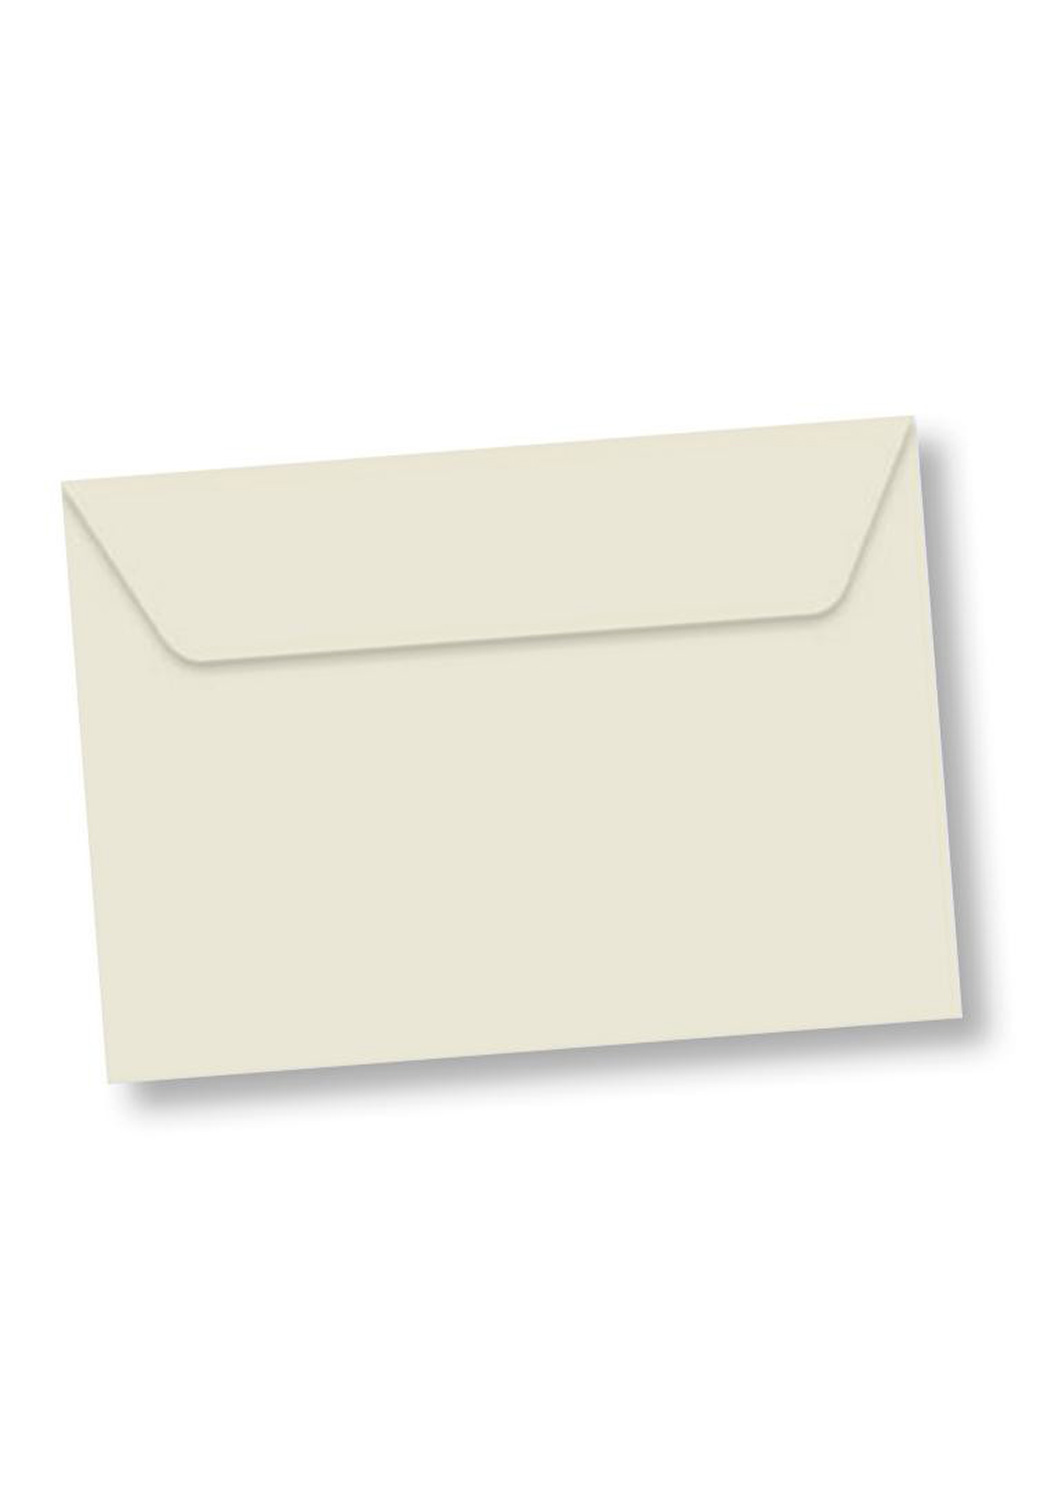 Marcello-art : Cartes de faire part Enveloppe rectangle A5 velin 162x229 mm couleur blanc